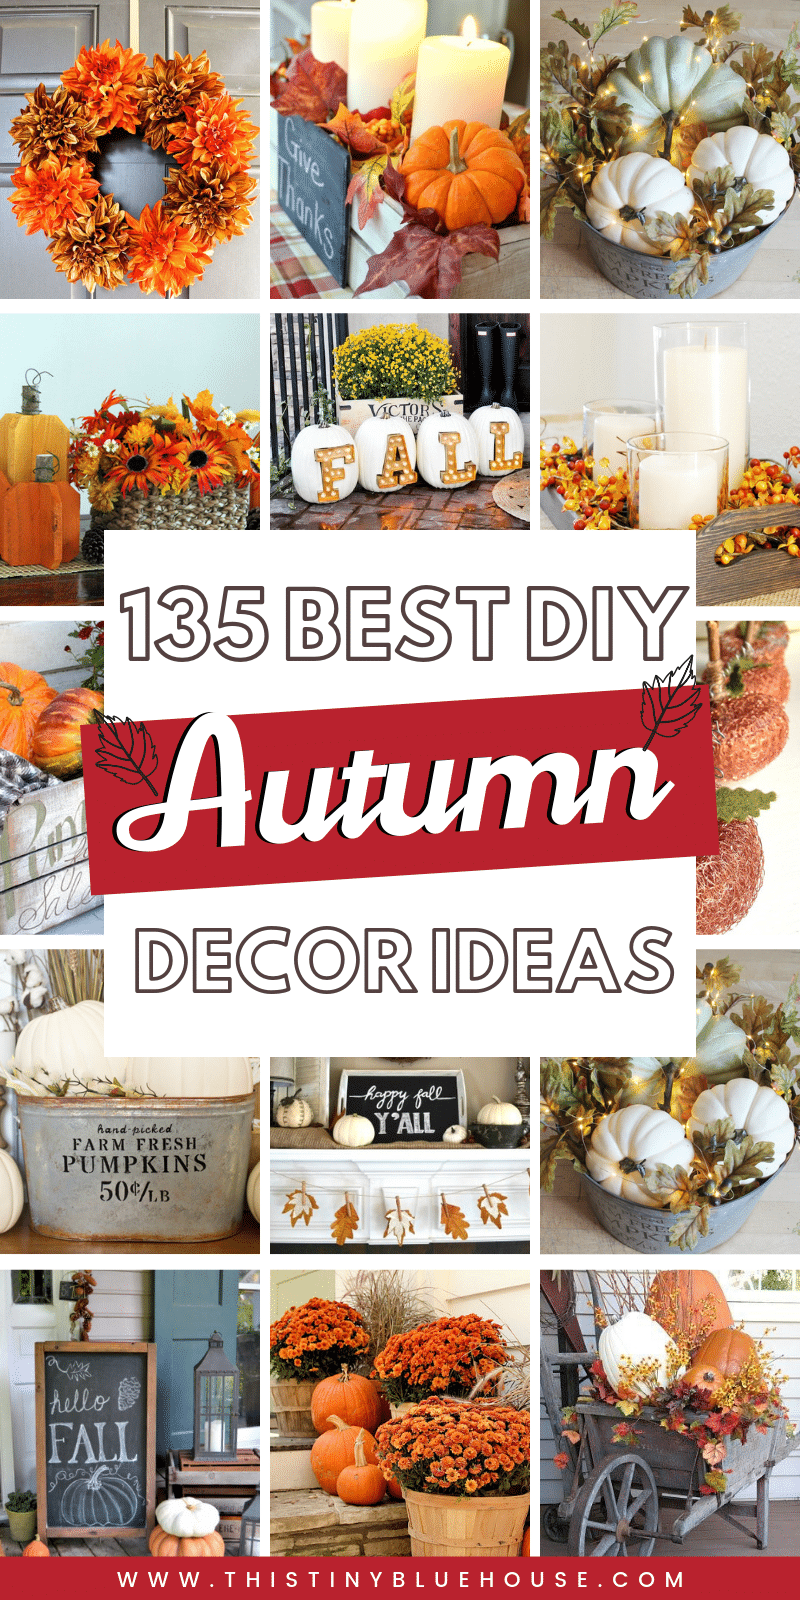 here are 130+ best DIY fall decor ideas that are perfect for welcoming autumn. These decor ideas include wreaths, indoor decor and even stunning outdoor porch decor ideas. These best DIY fall decor ideas are guaranteed to glam your house up in time for fall. #falldecor #diyfalldecor #autmndecordiy #DIYfallwreaths #DIYfalldecorinside #DIYfalldecorporch #fallporchideas #autumnporchideas #dollarstorefalldecor